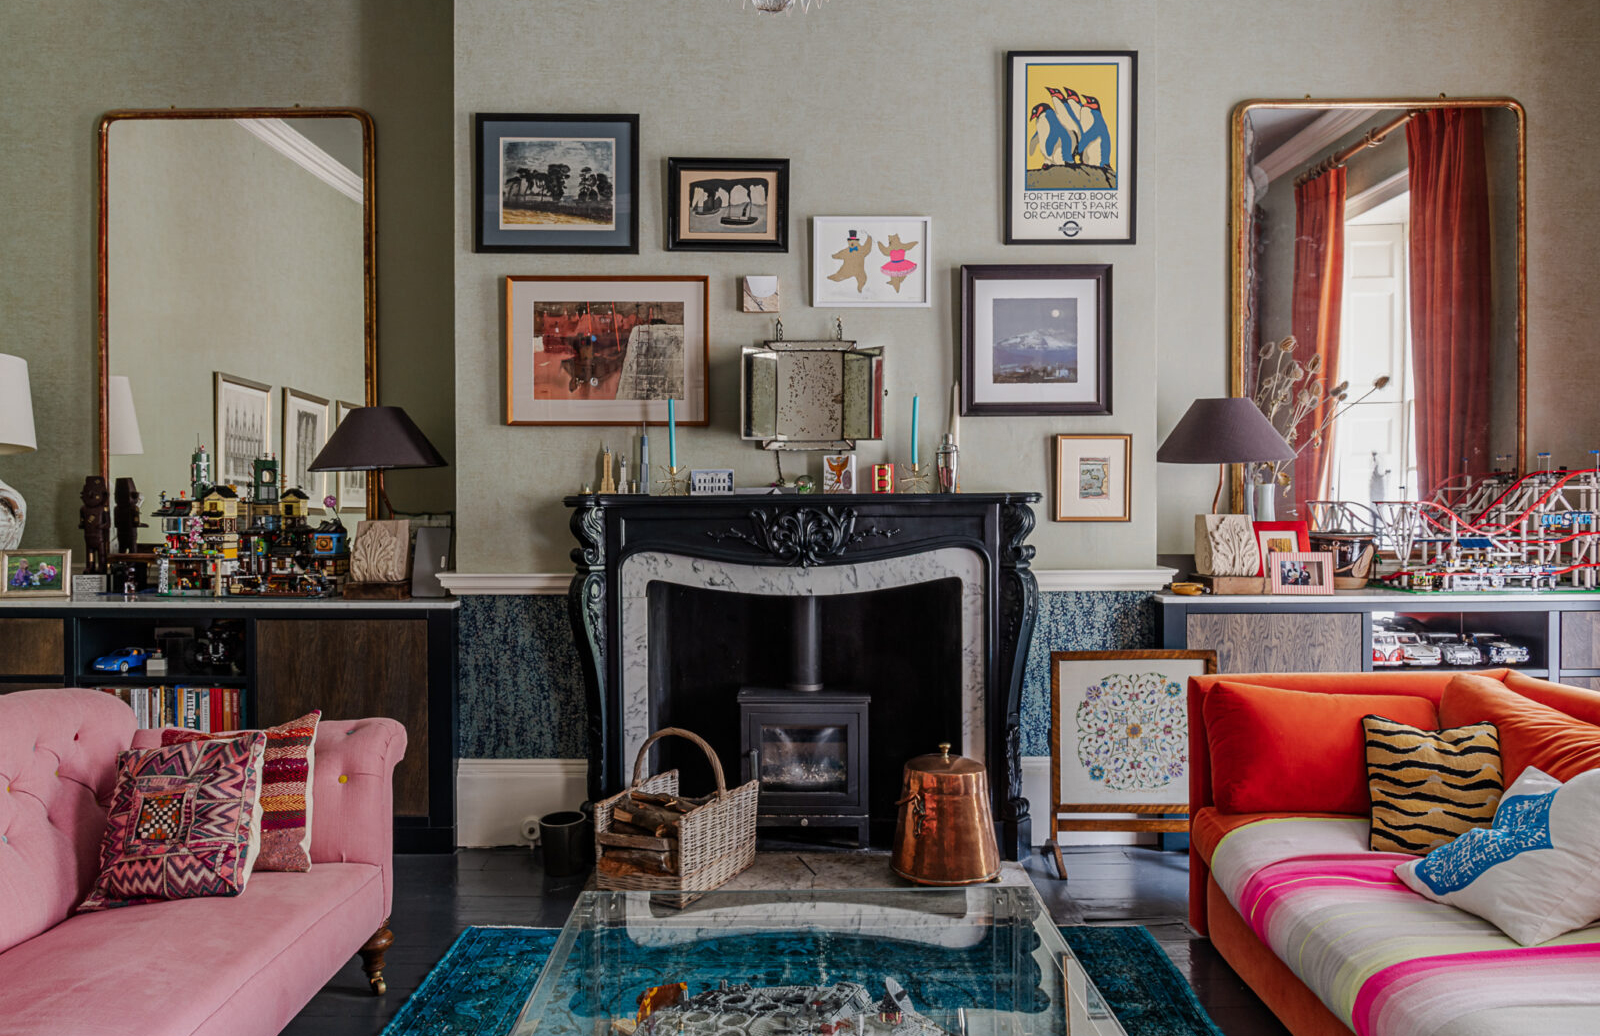 Colour is king inside this maximalist Georgian property